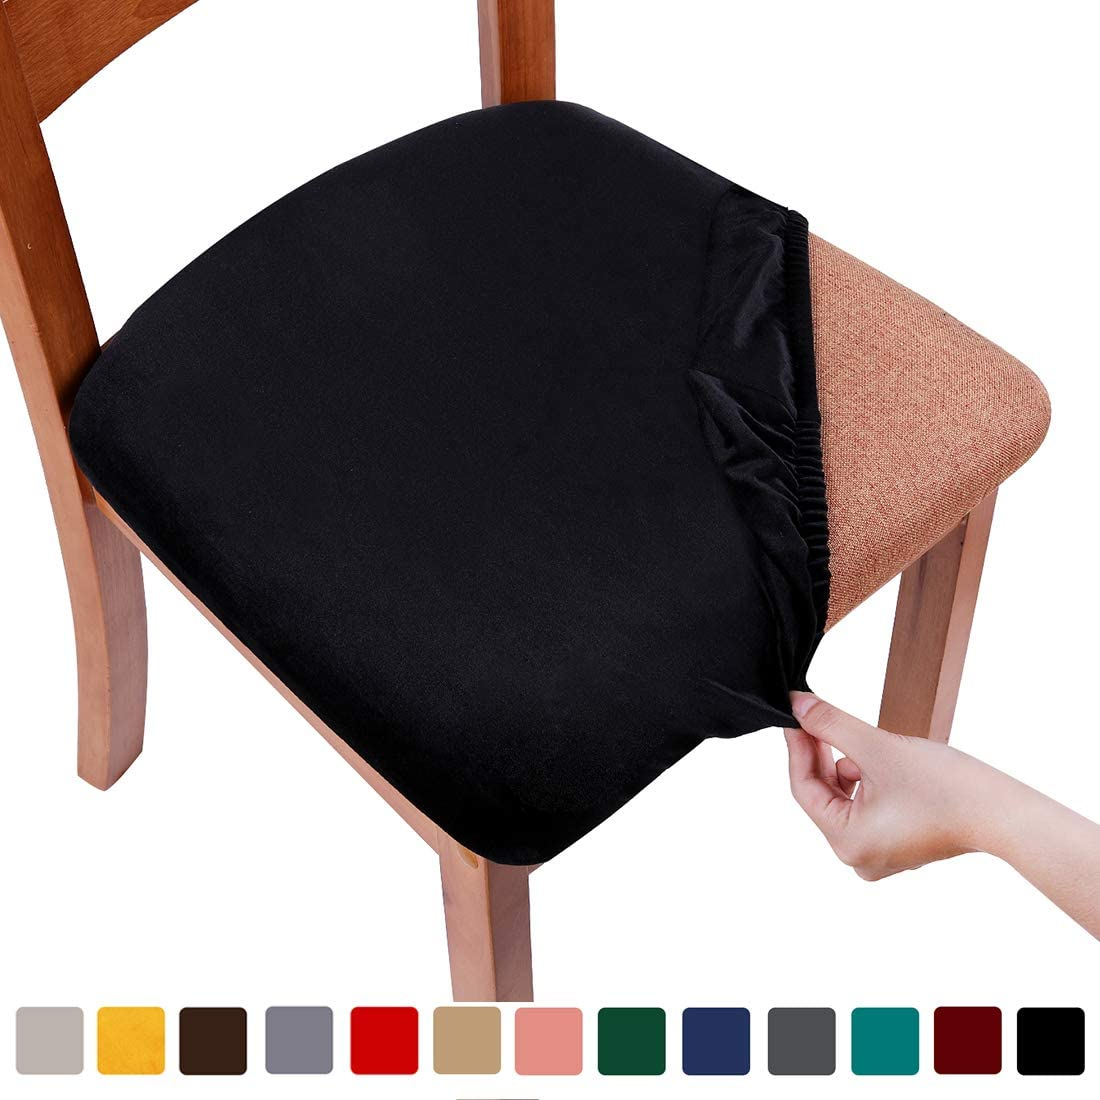 smiry Original Velvet Dining Chair Seat Covers, Stretch Fitted Dining Room Upholstered Chair Seat Cushion Cover, Removable Washable Furniture Protector Slipcovers with Ties - Set of 4, Black